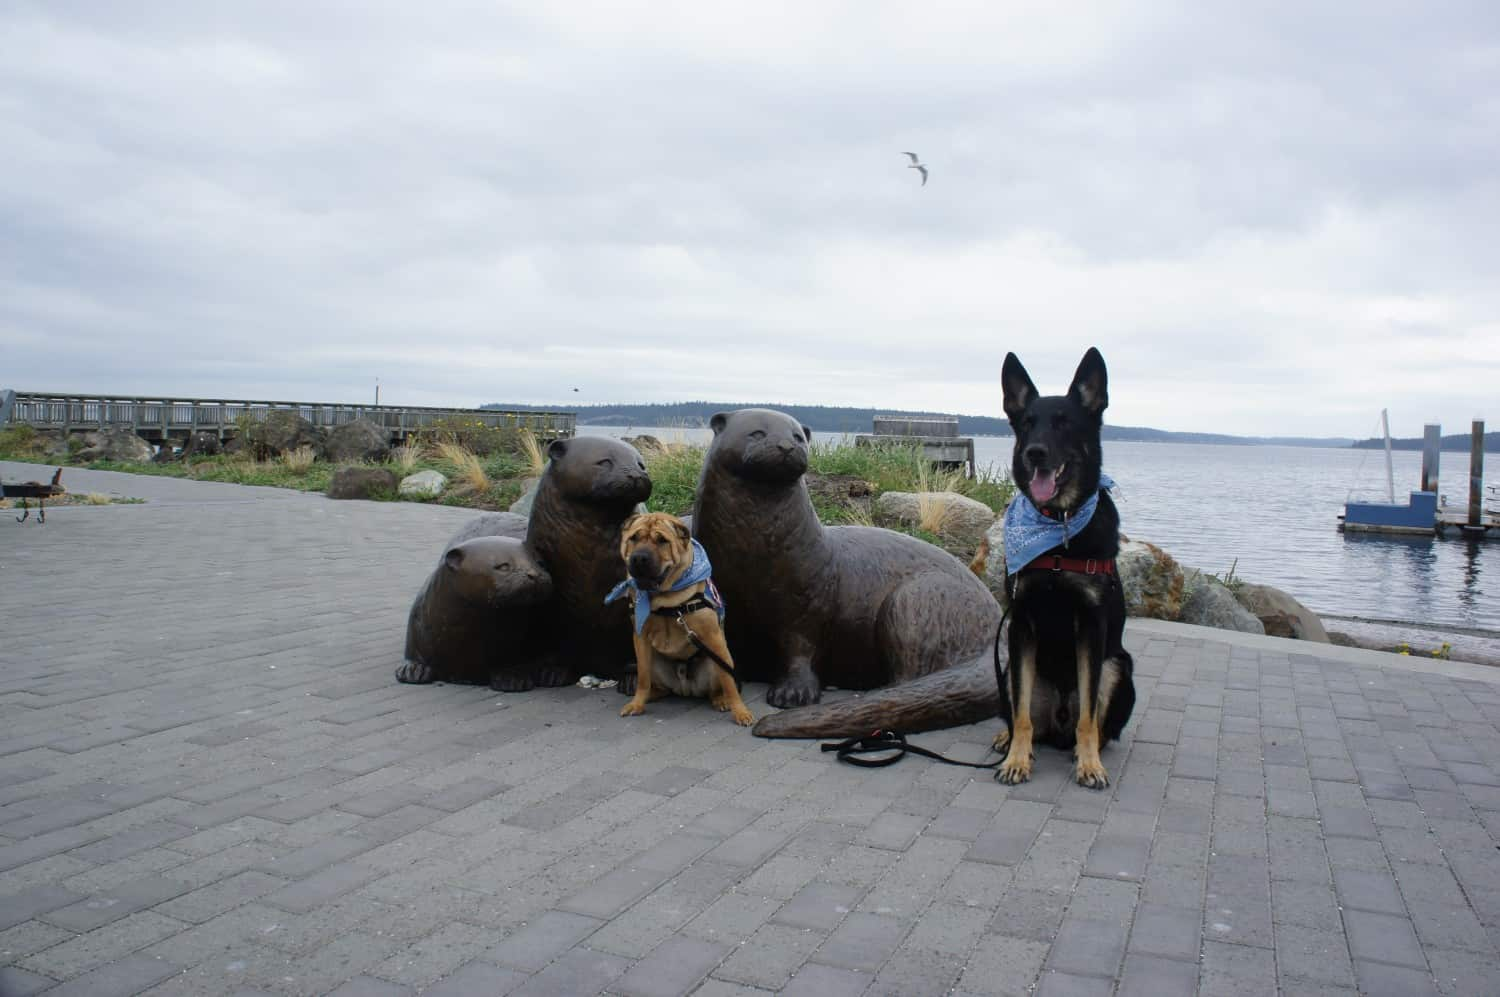 Otters and Dogs - Port Townsend, WA